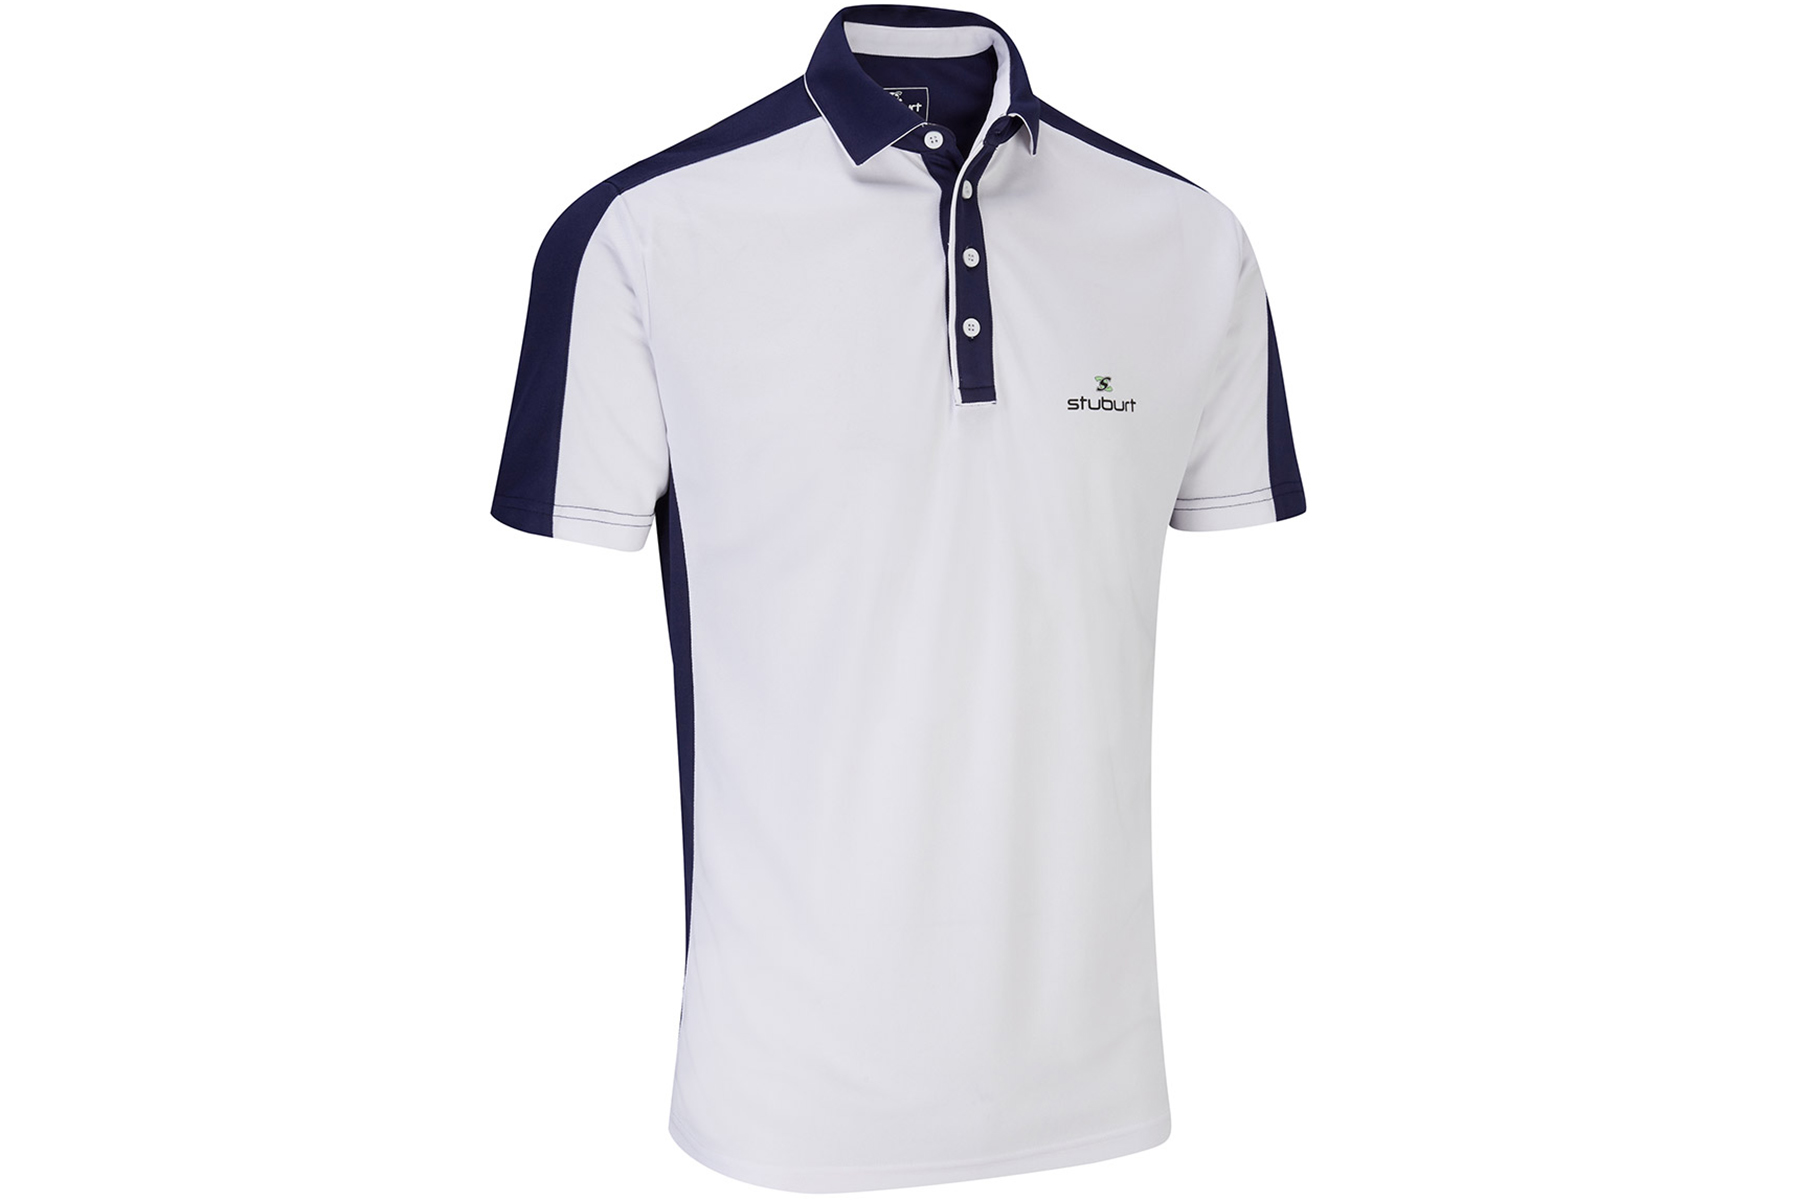 Stuburt Moisture Wicking Polo Shirt From American Golf